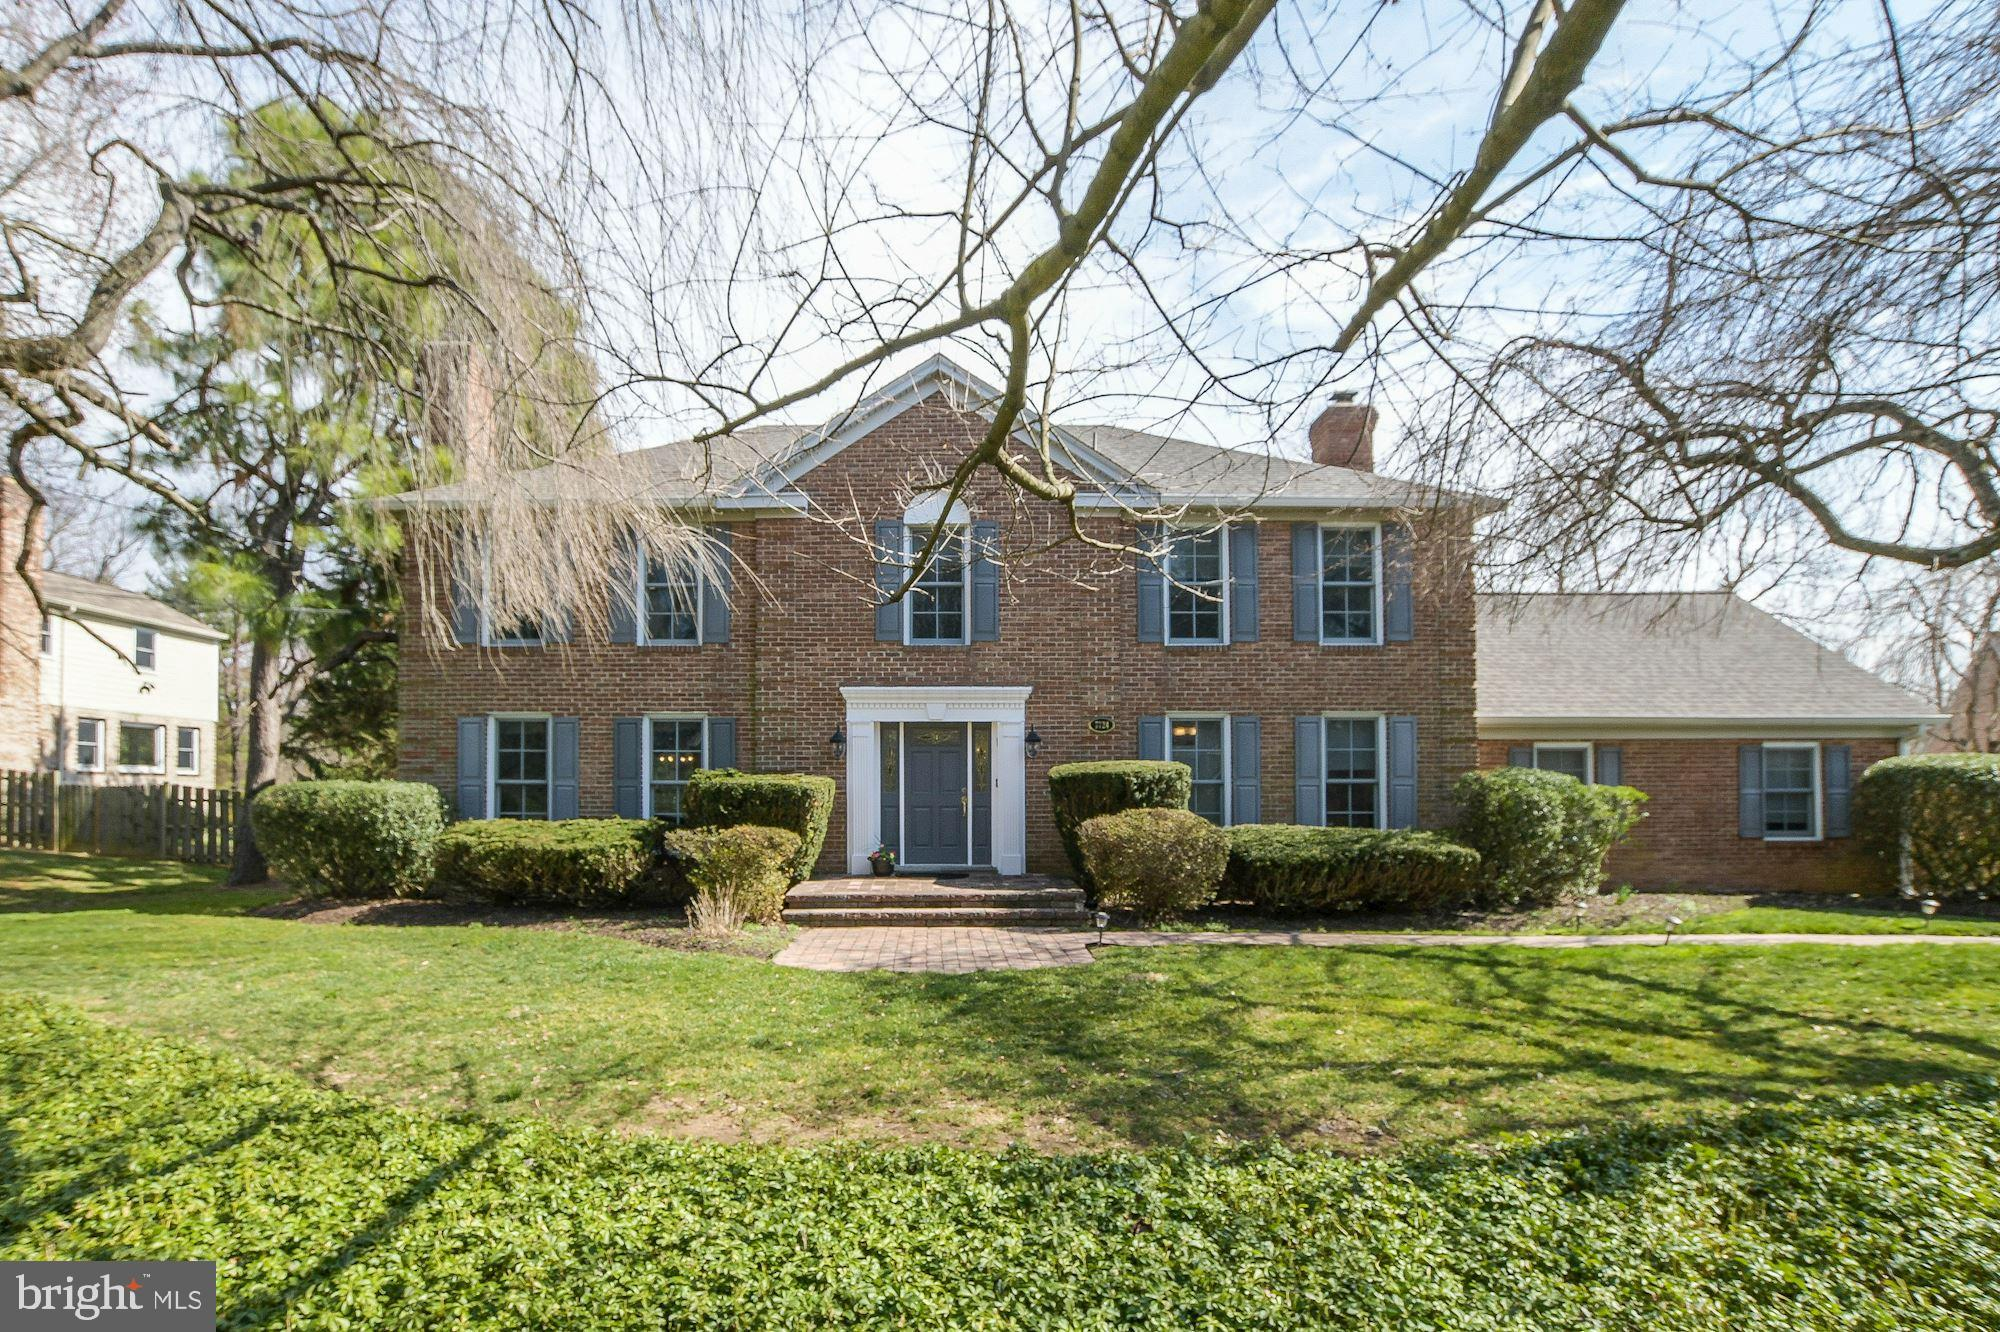 7724 Fontaine, Potomac, MD 20854